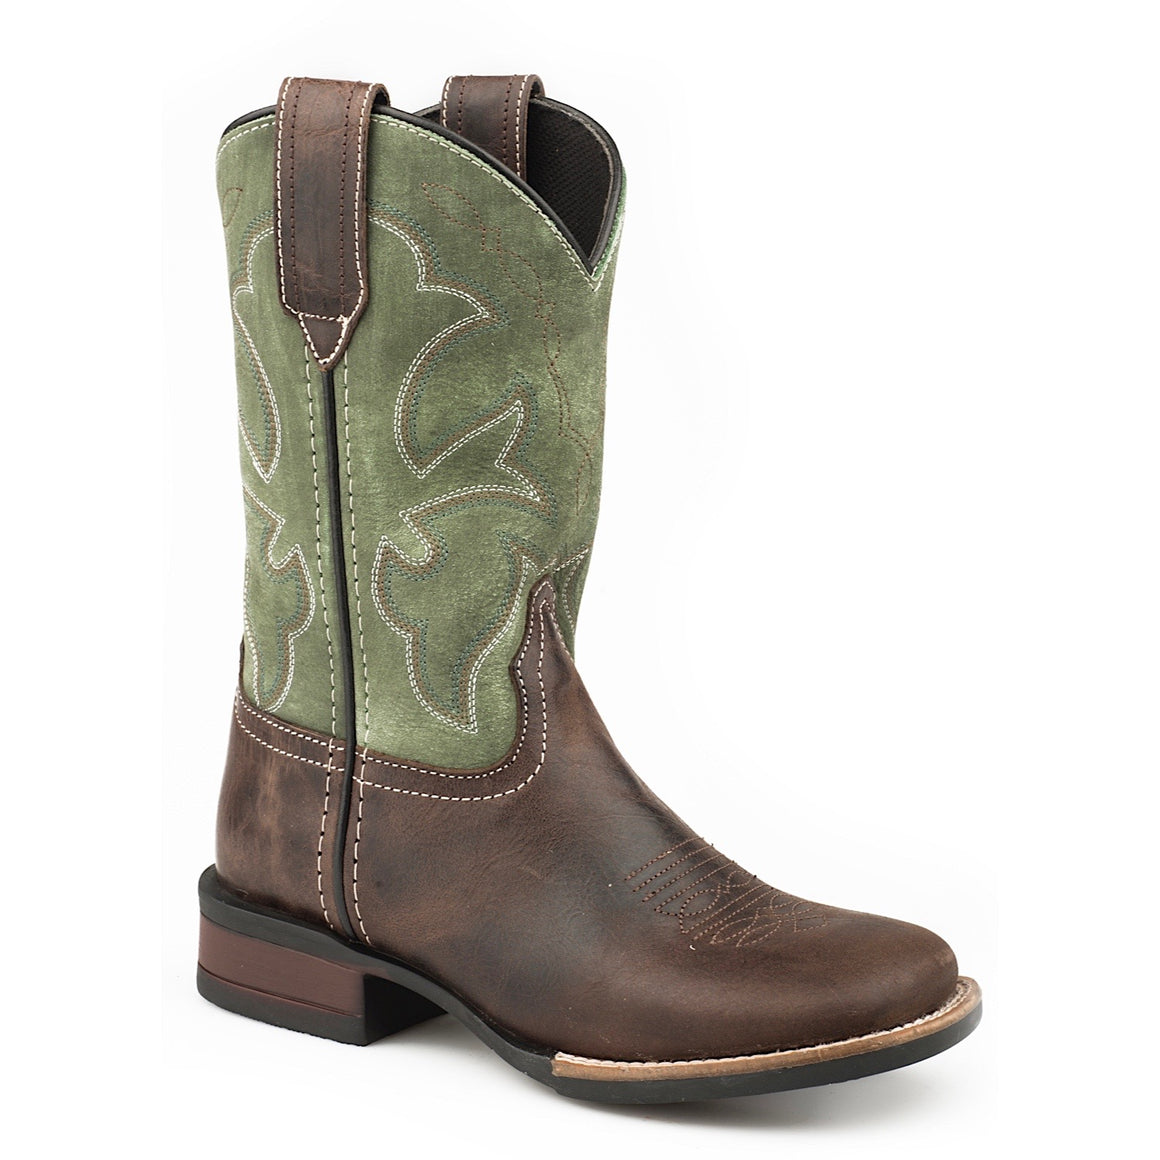 Roper Little Kids Monterey Leather Western Boots Chocolate/ Green